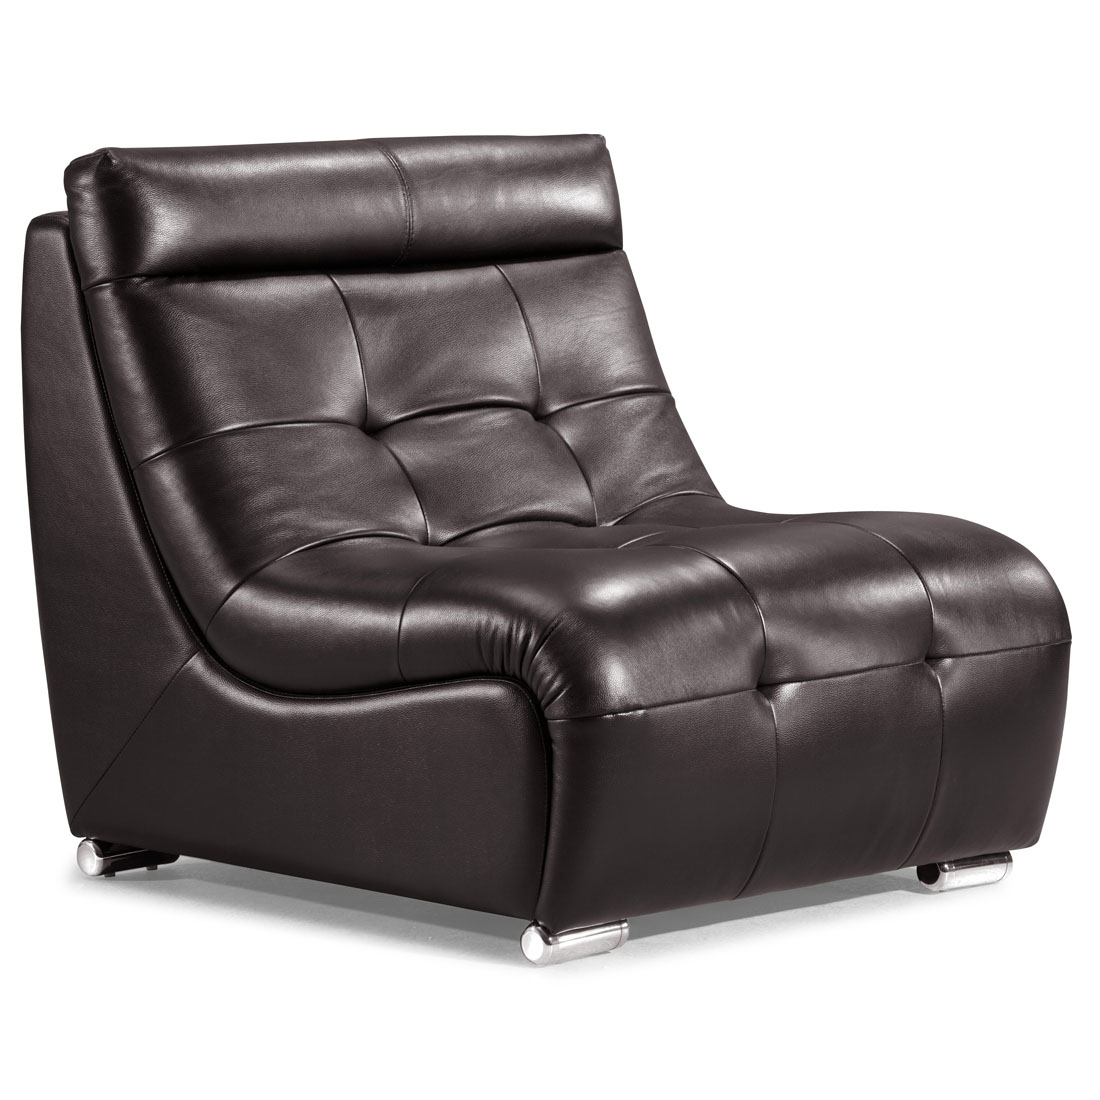 leather sofa designs single best design home